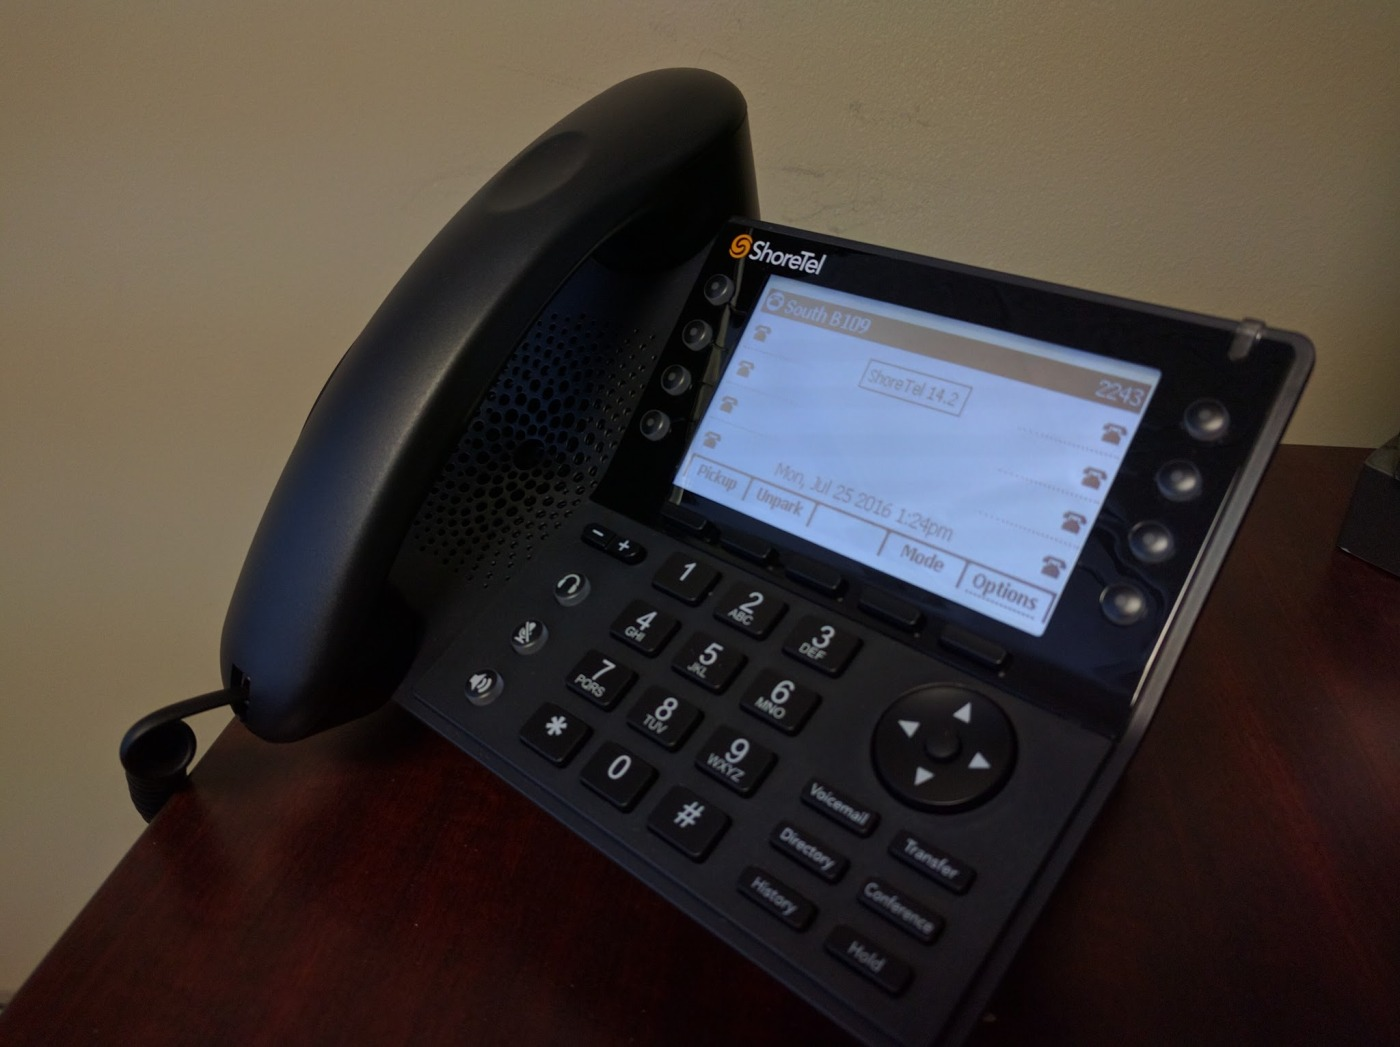 Phone - ShoreTel Phone